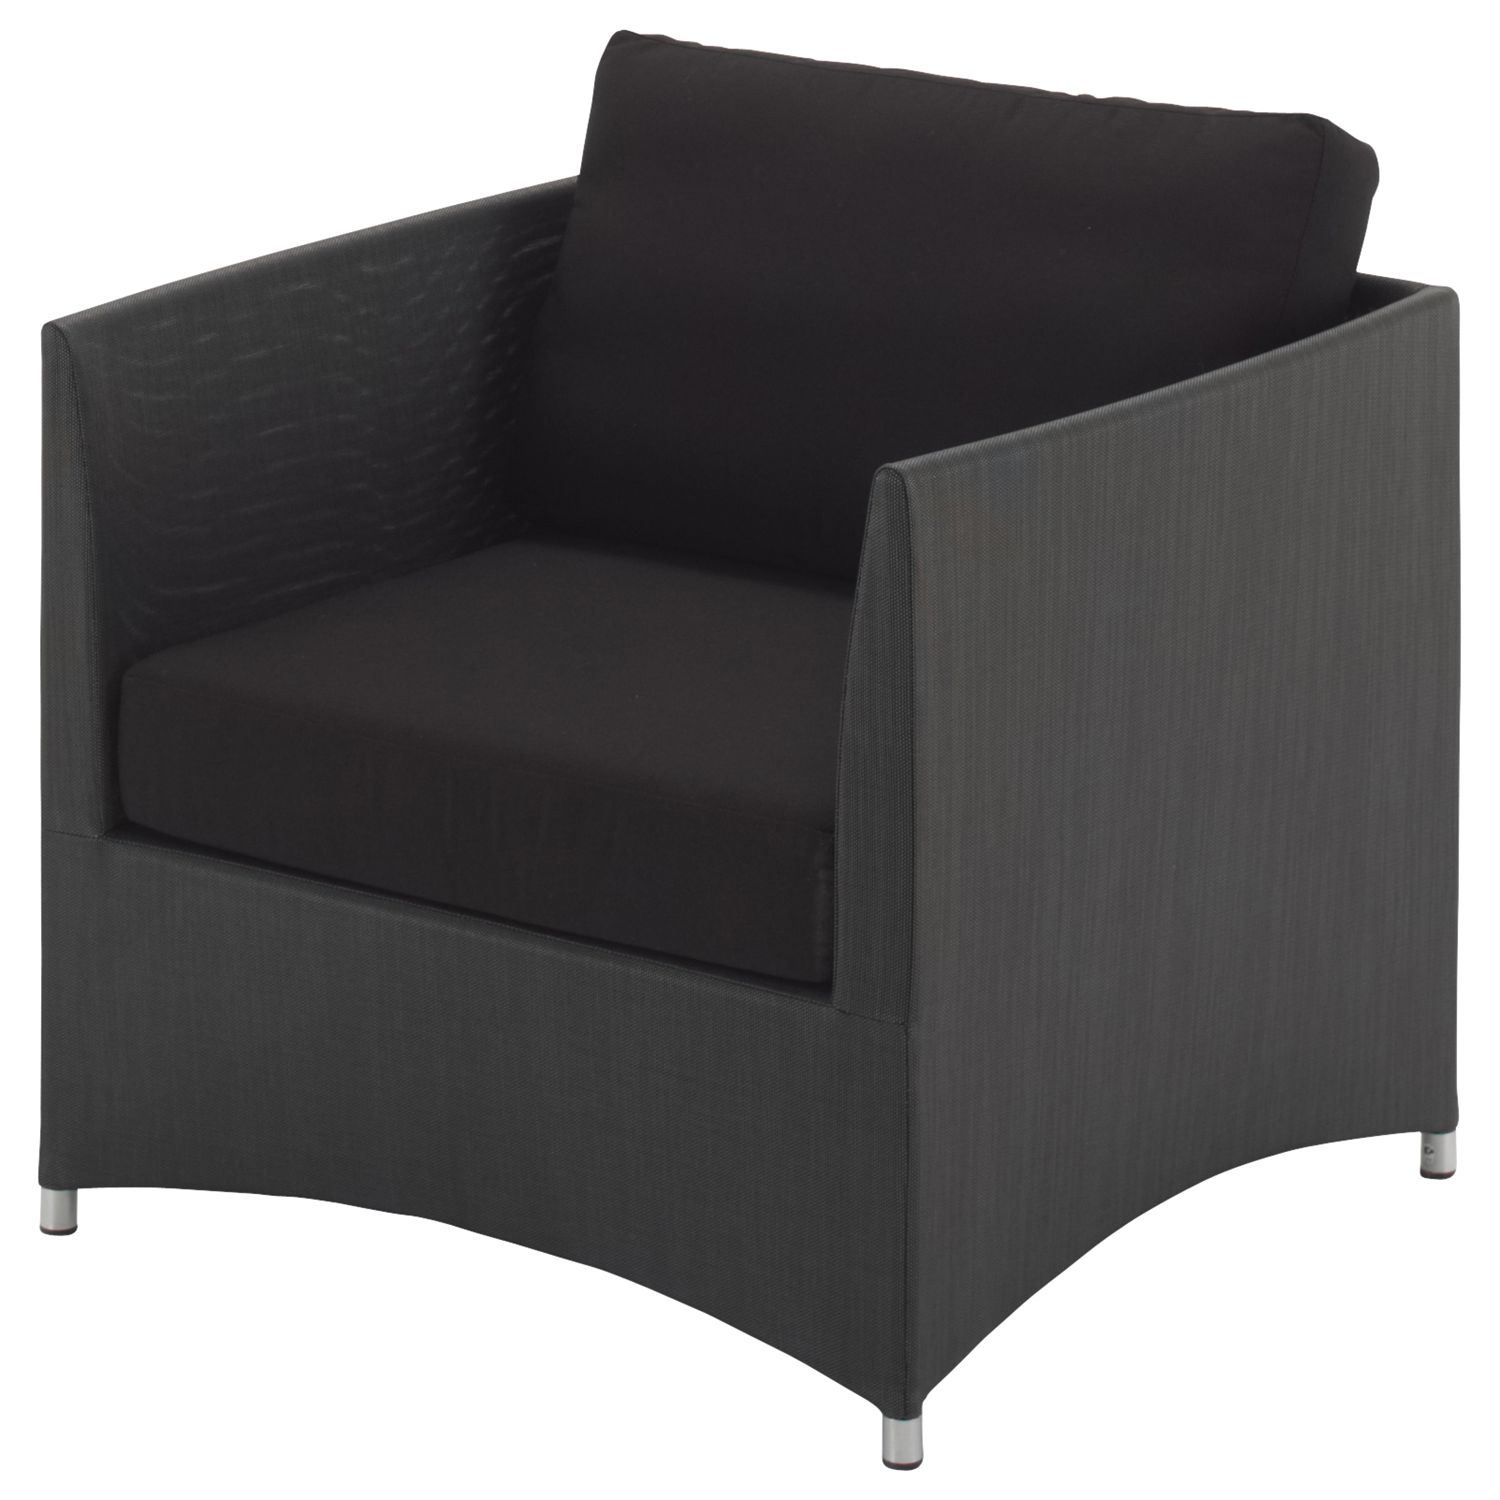 Gloster Casa Outdoor Lounge Armchair